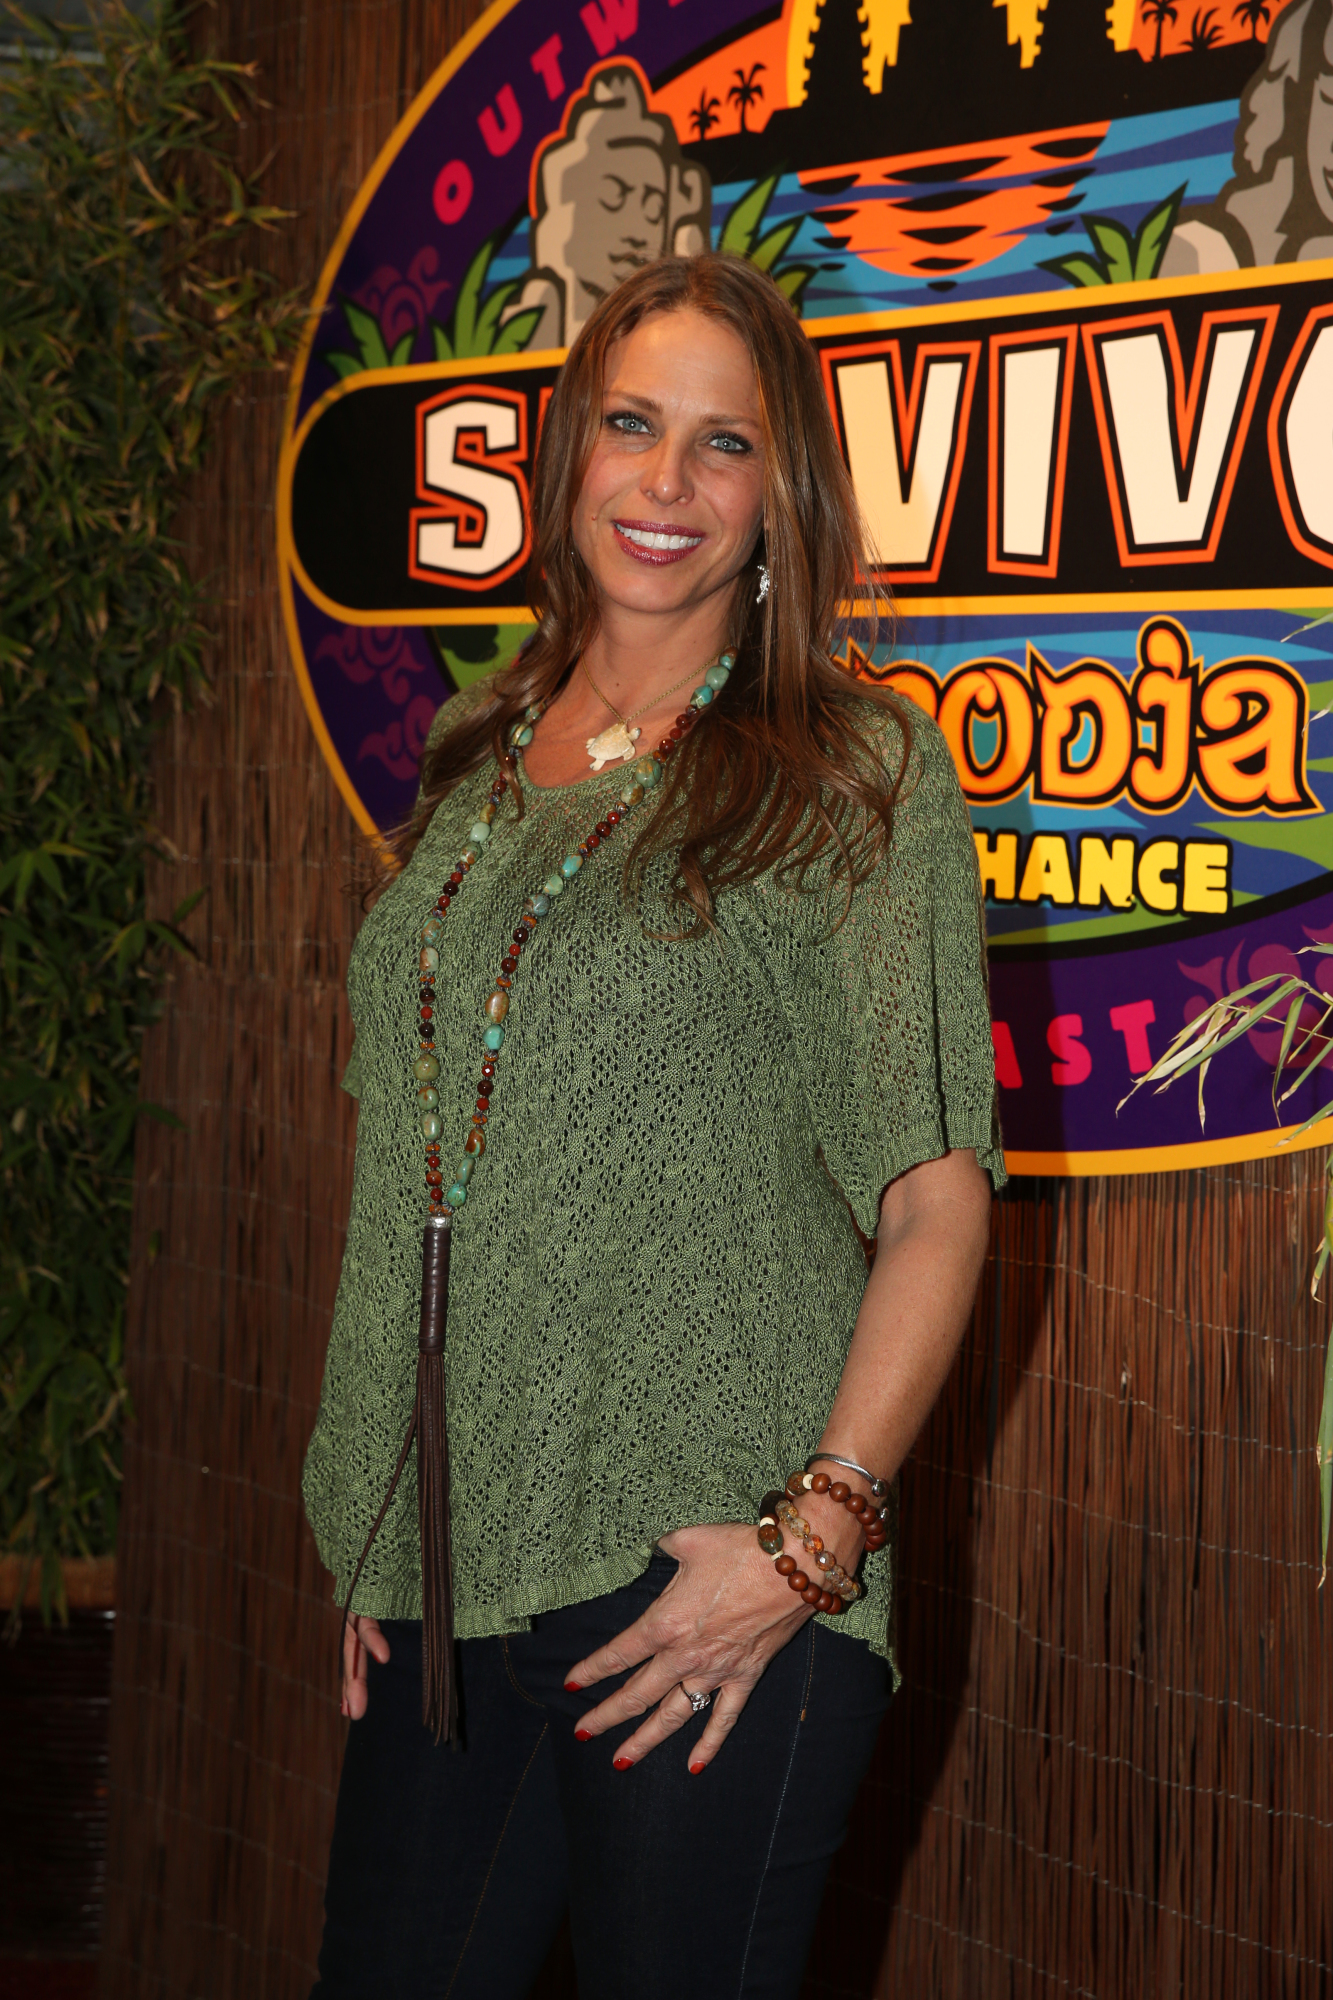 Kimmi Kappenberg on the Survivor: Second Chance finale red carpet